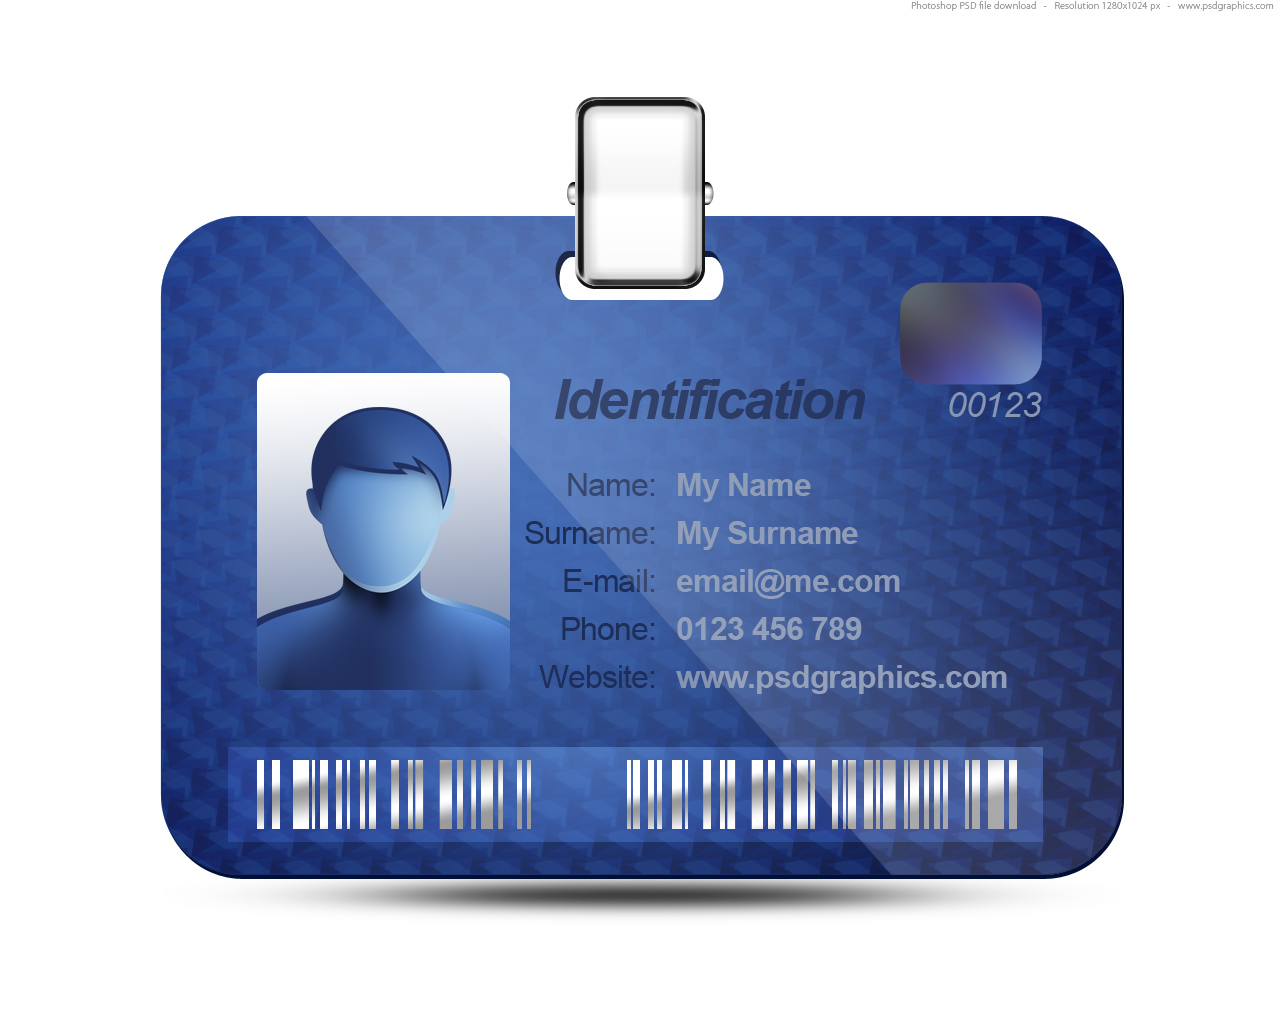 10 Identification Badge Icon Images